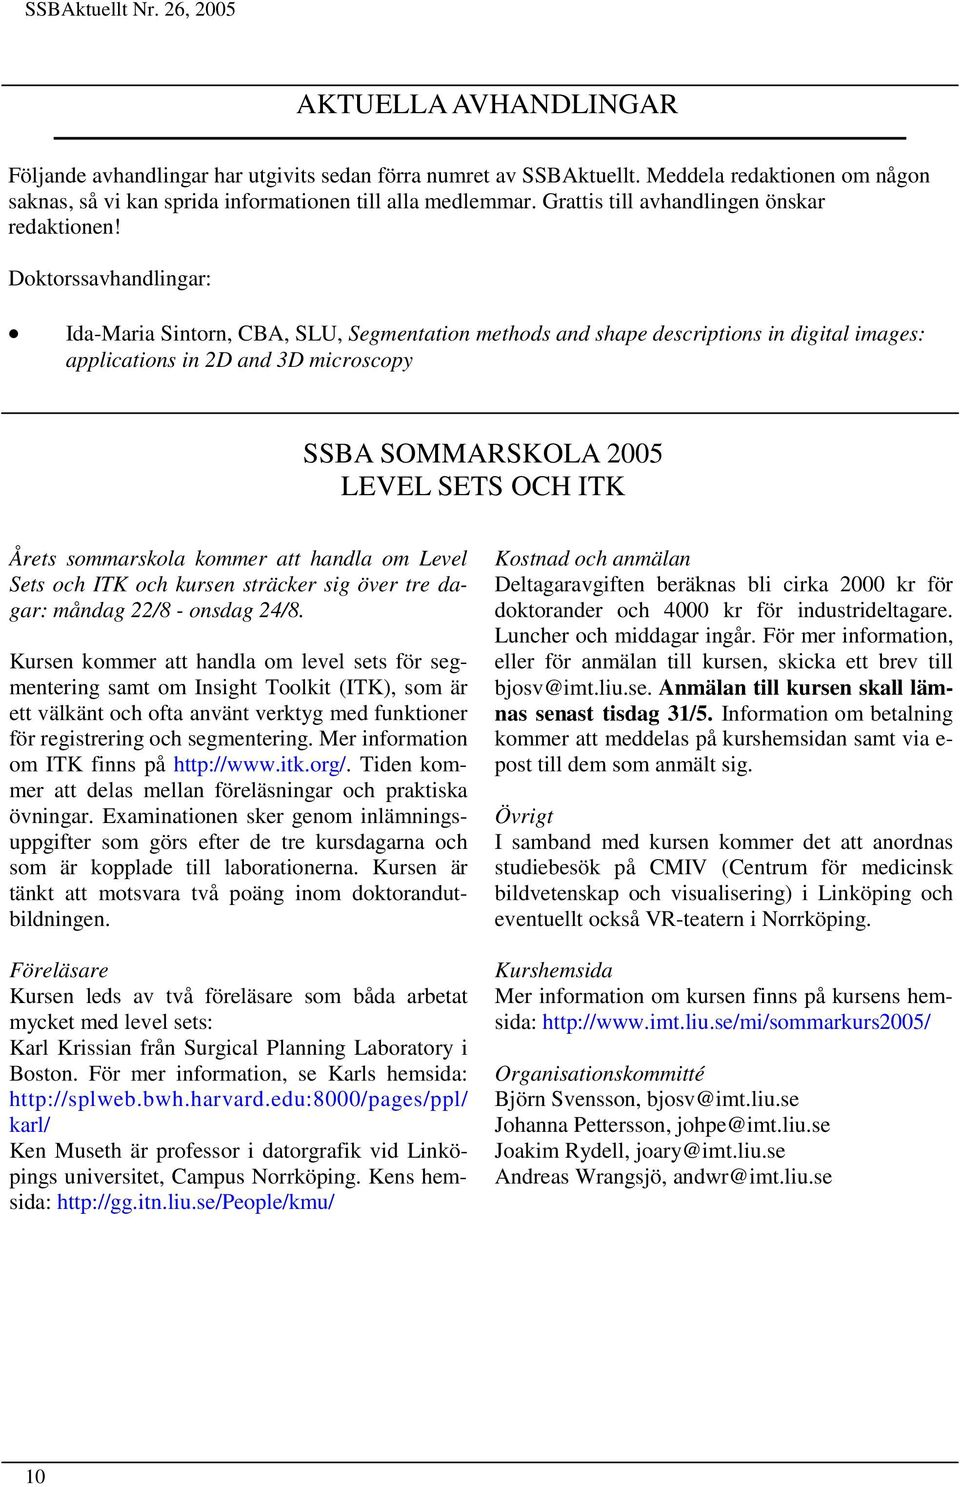 Doktorssavhandlingar: Ida-Maria Sintorn, CBA, SLU, Segmentation methods and shape descriptions in digital images: applications in 2D and 3D microscopy SSBA SOMMARSKOLA 2005 LEVEL SETS OCH ITK Årets